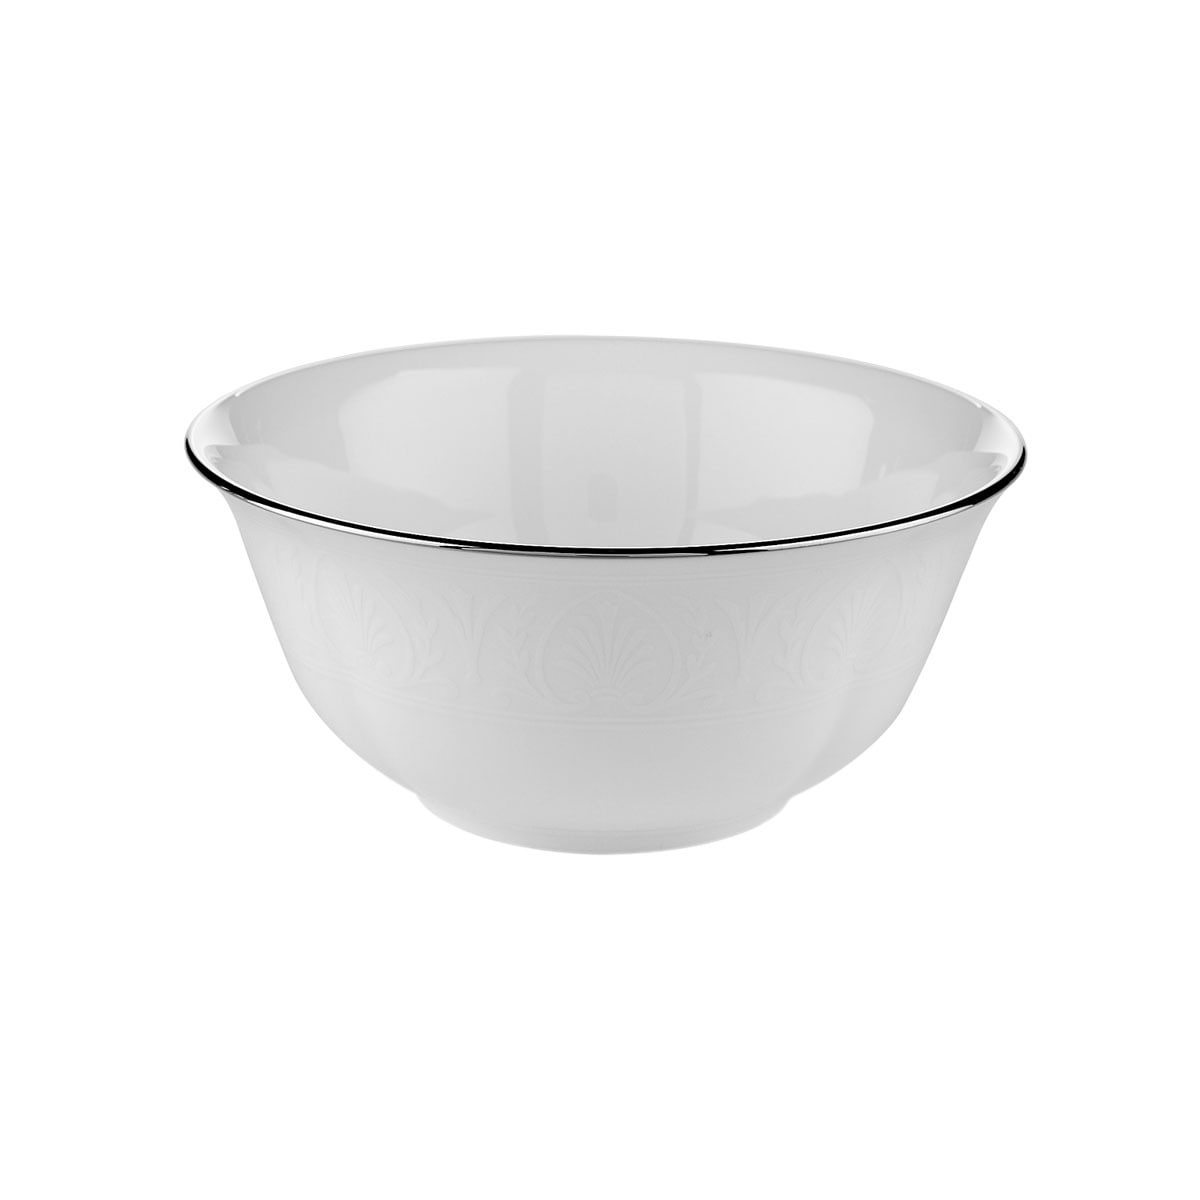 Bowl For Fruit Lenox Hancock Platinum White 9 Ounce Fruit Bowl